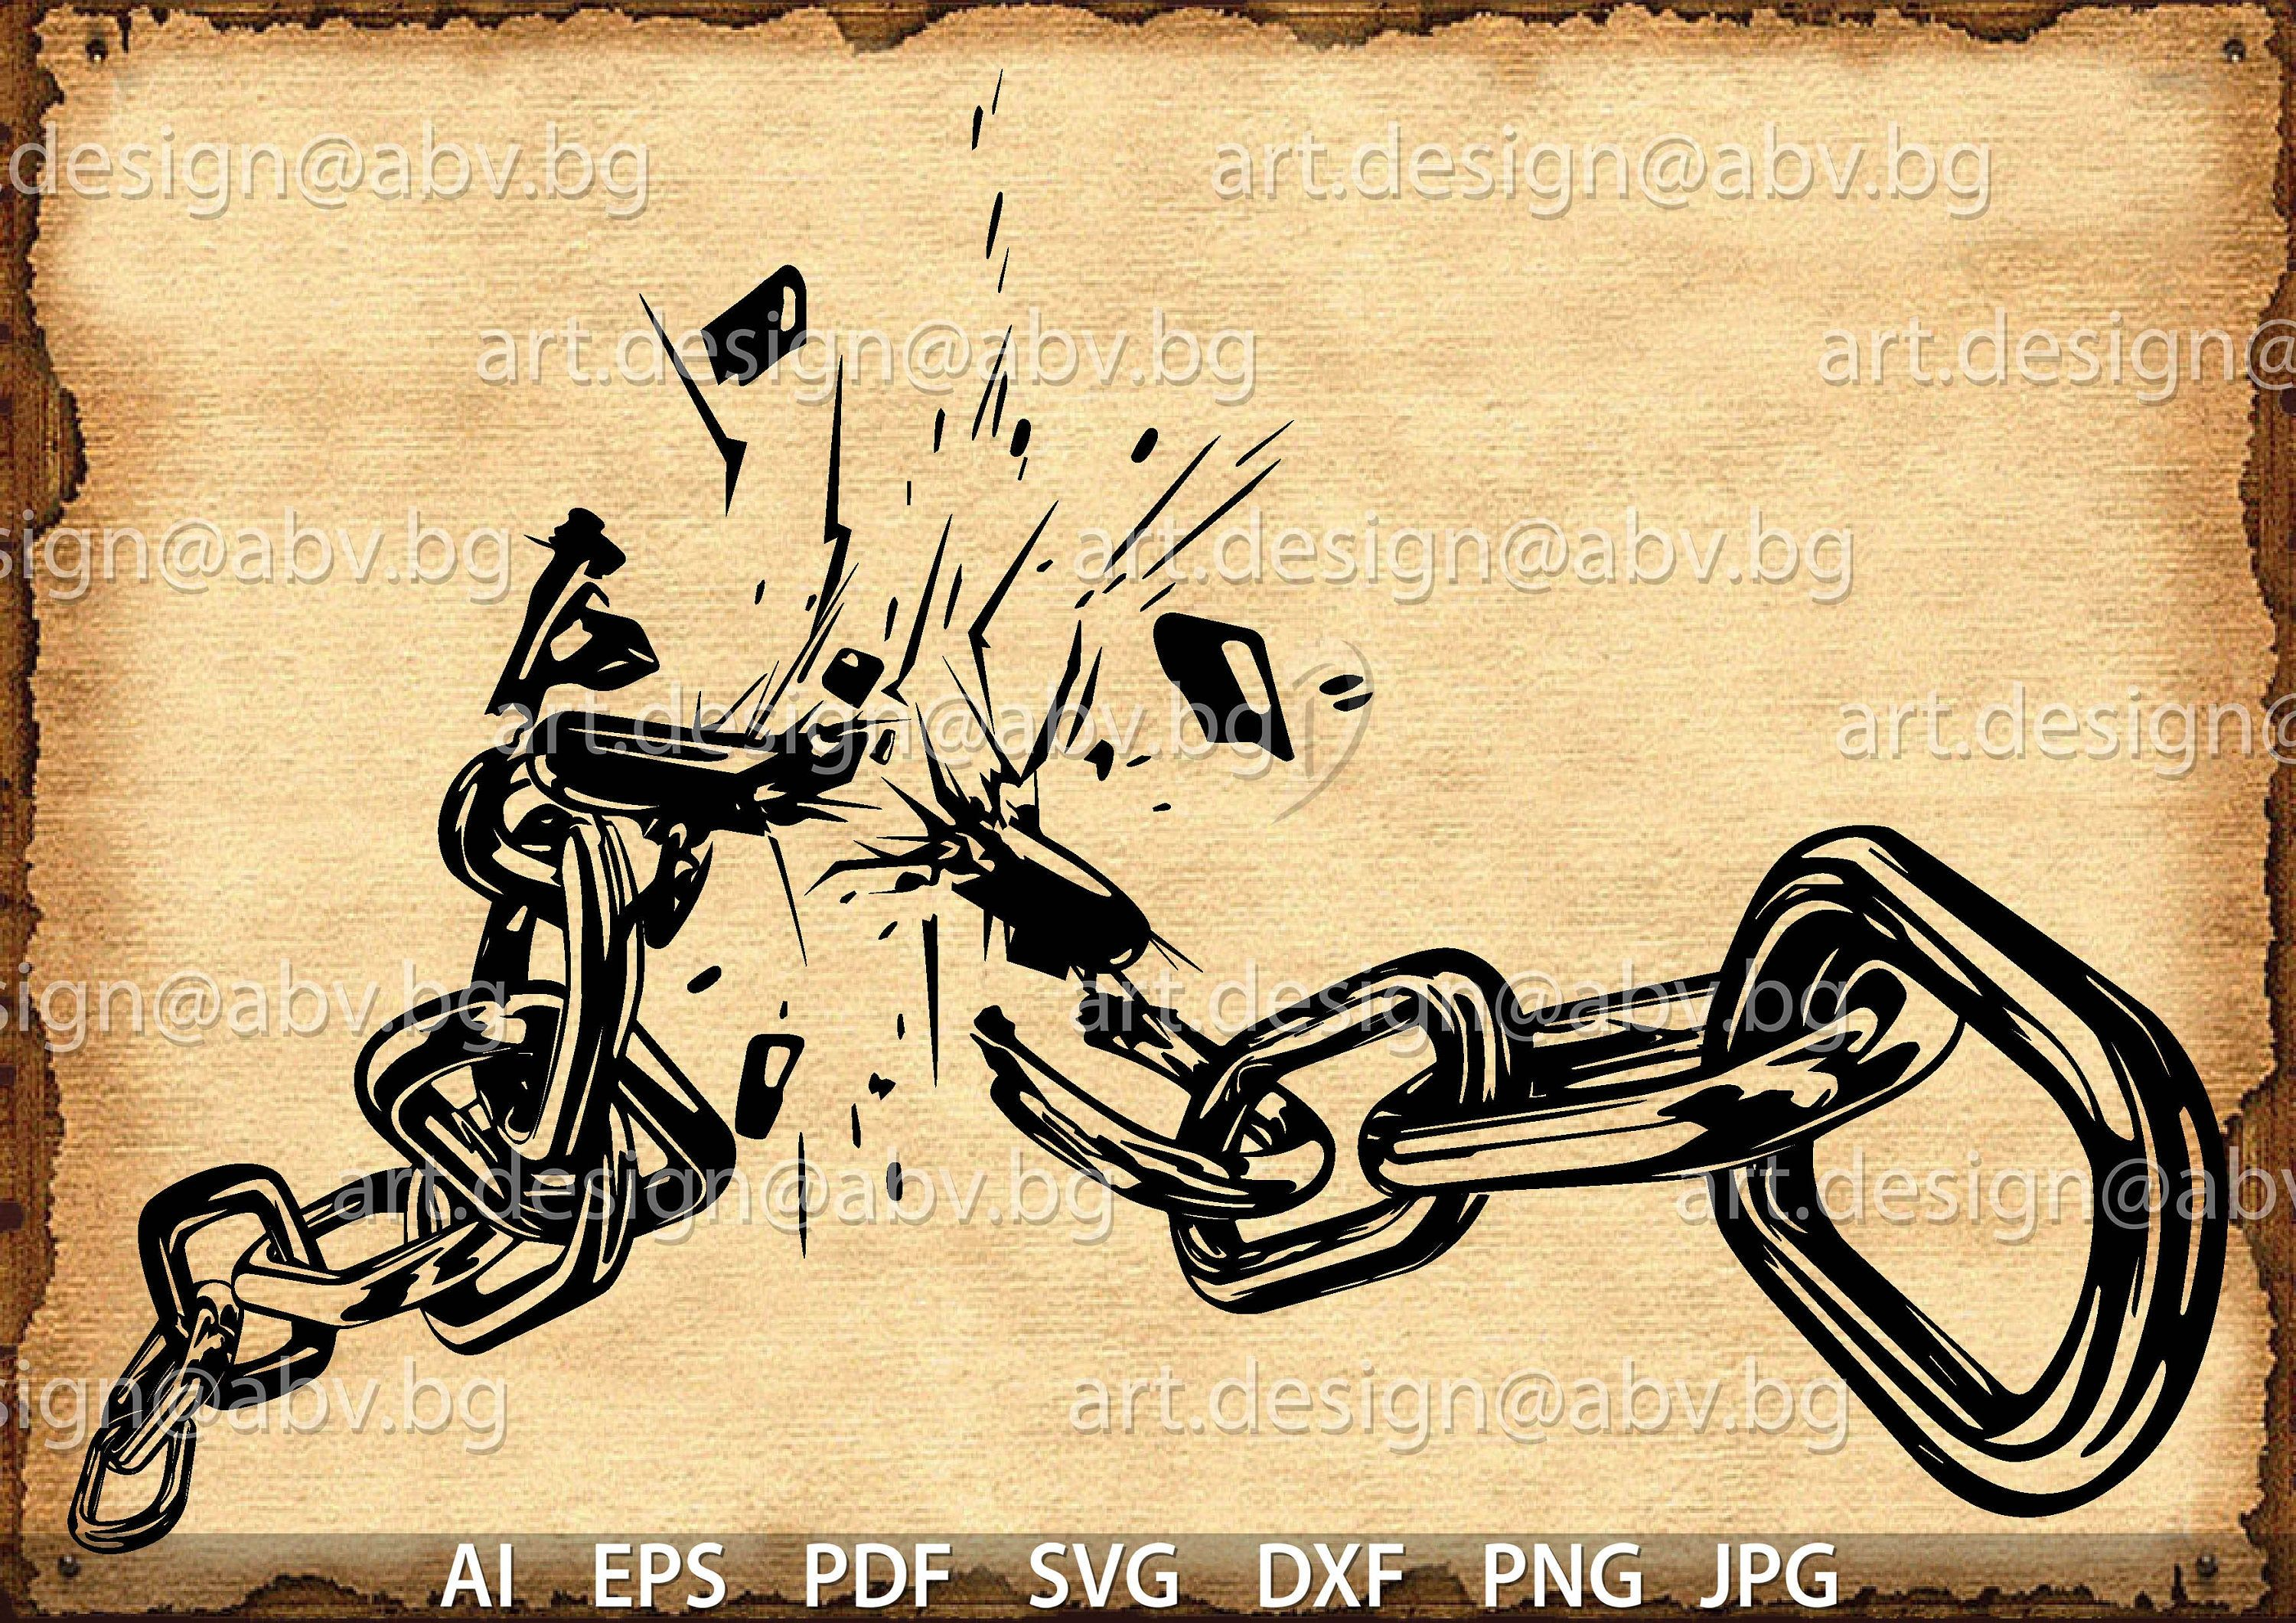 Vector Broken Chains Ai Eps Svg Dxf Pdf Png Jpg Etsy In 2021 Chain Tattoo Urban Tattoos Broken Chain